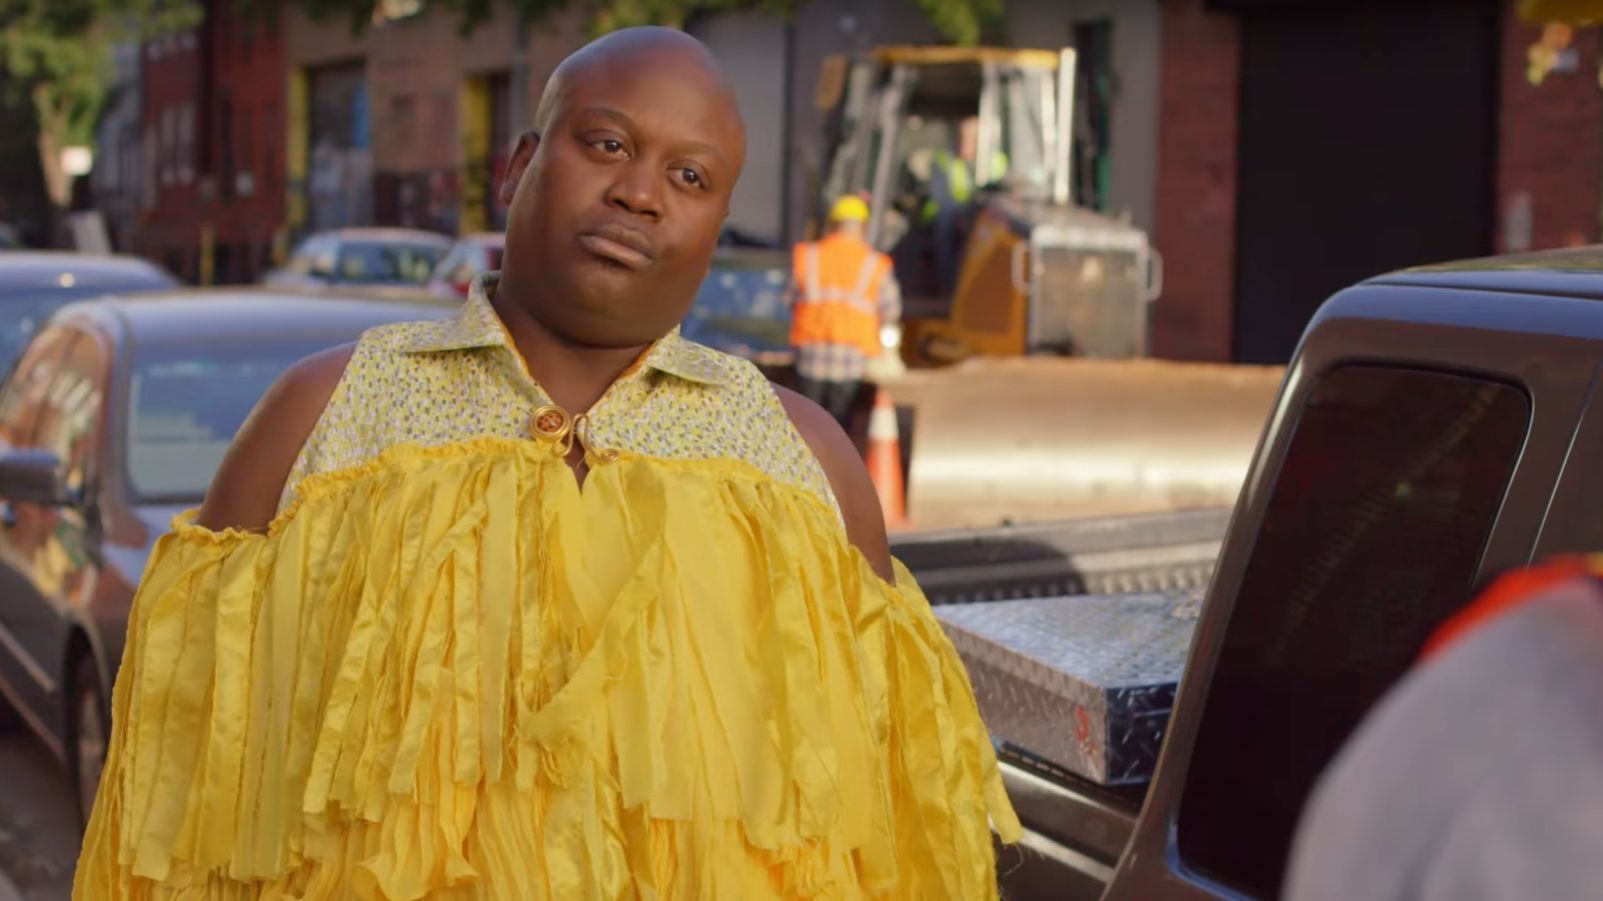 Unbreakable Kimmy Schmidt: Kimmy Goes to College in This Season 3 Trailer!